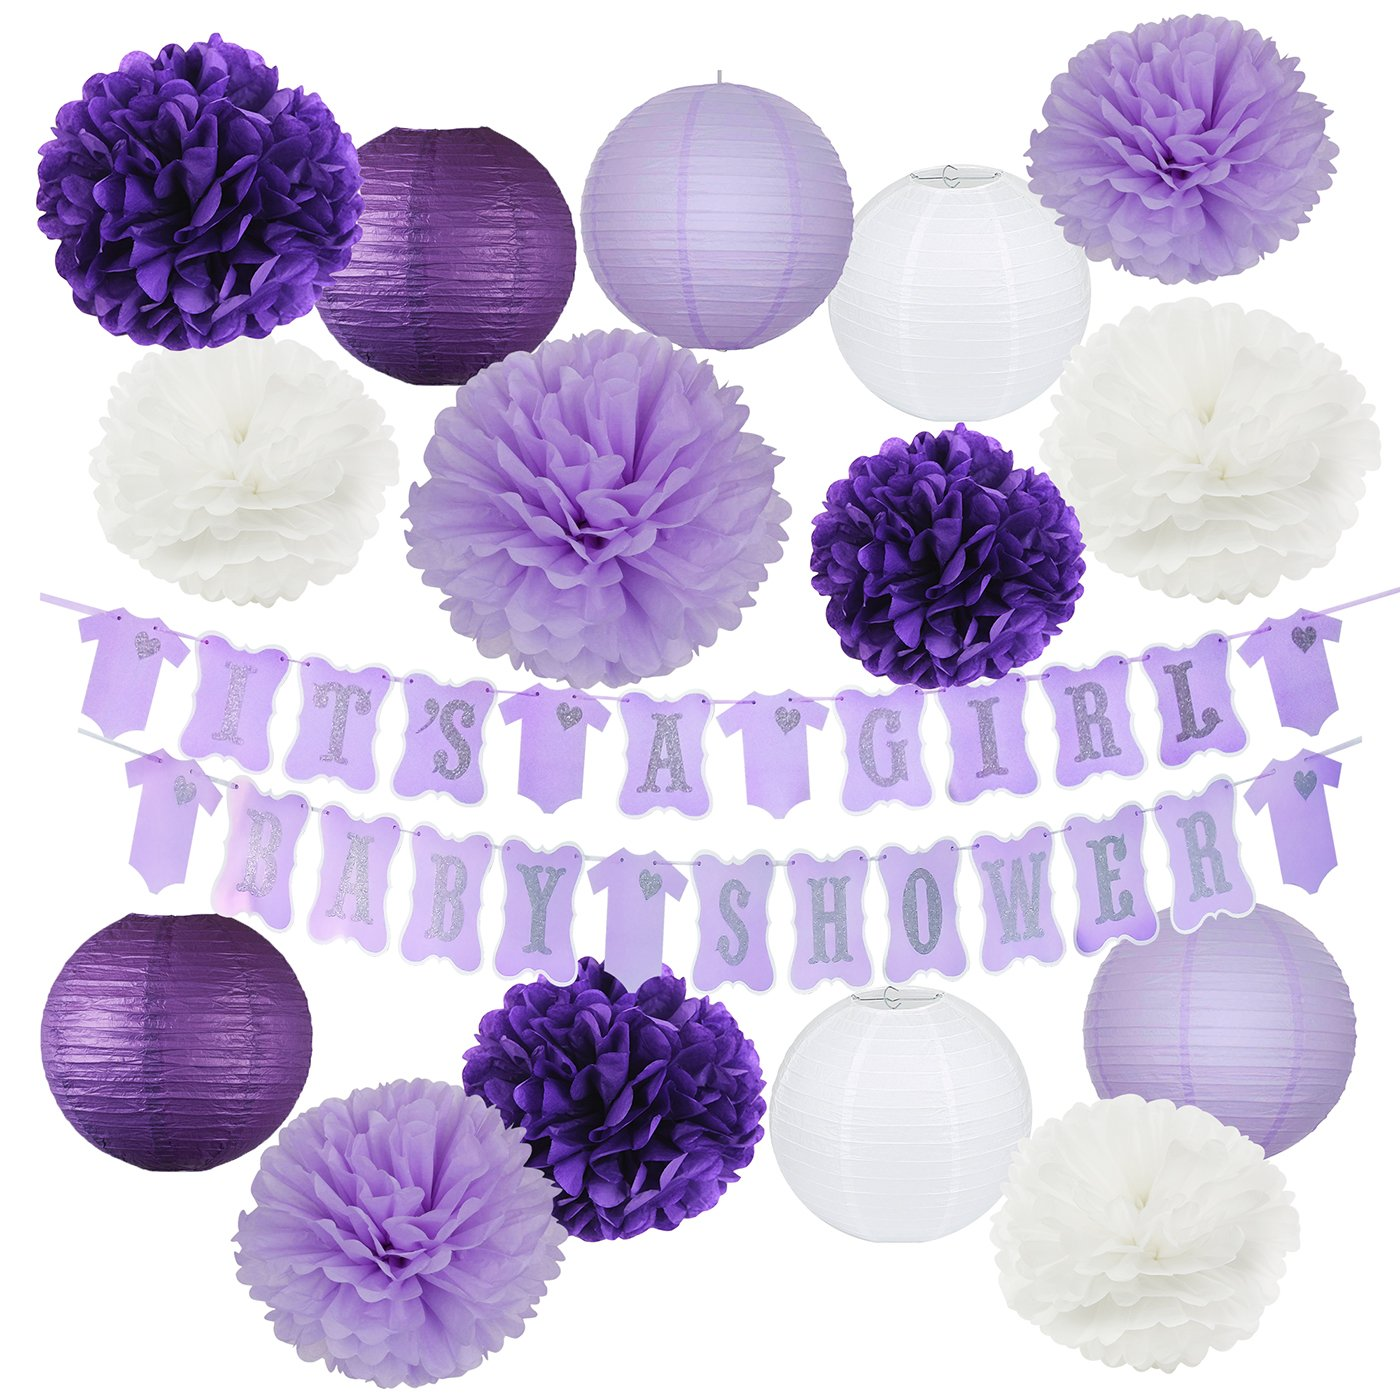 Elephant Purple Baby Shower Decorations It's A Girl Baby Shower Banner of Purple and Silver Color with Tissue Pom Poms Girl Baby Birthday Decor Purple Baby Shower Decor